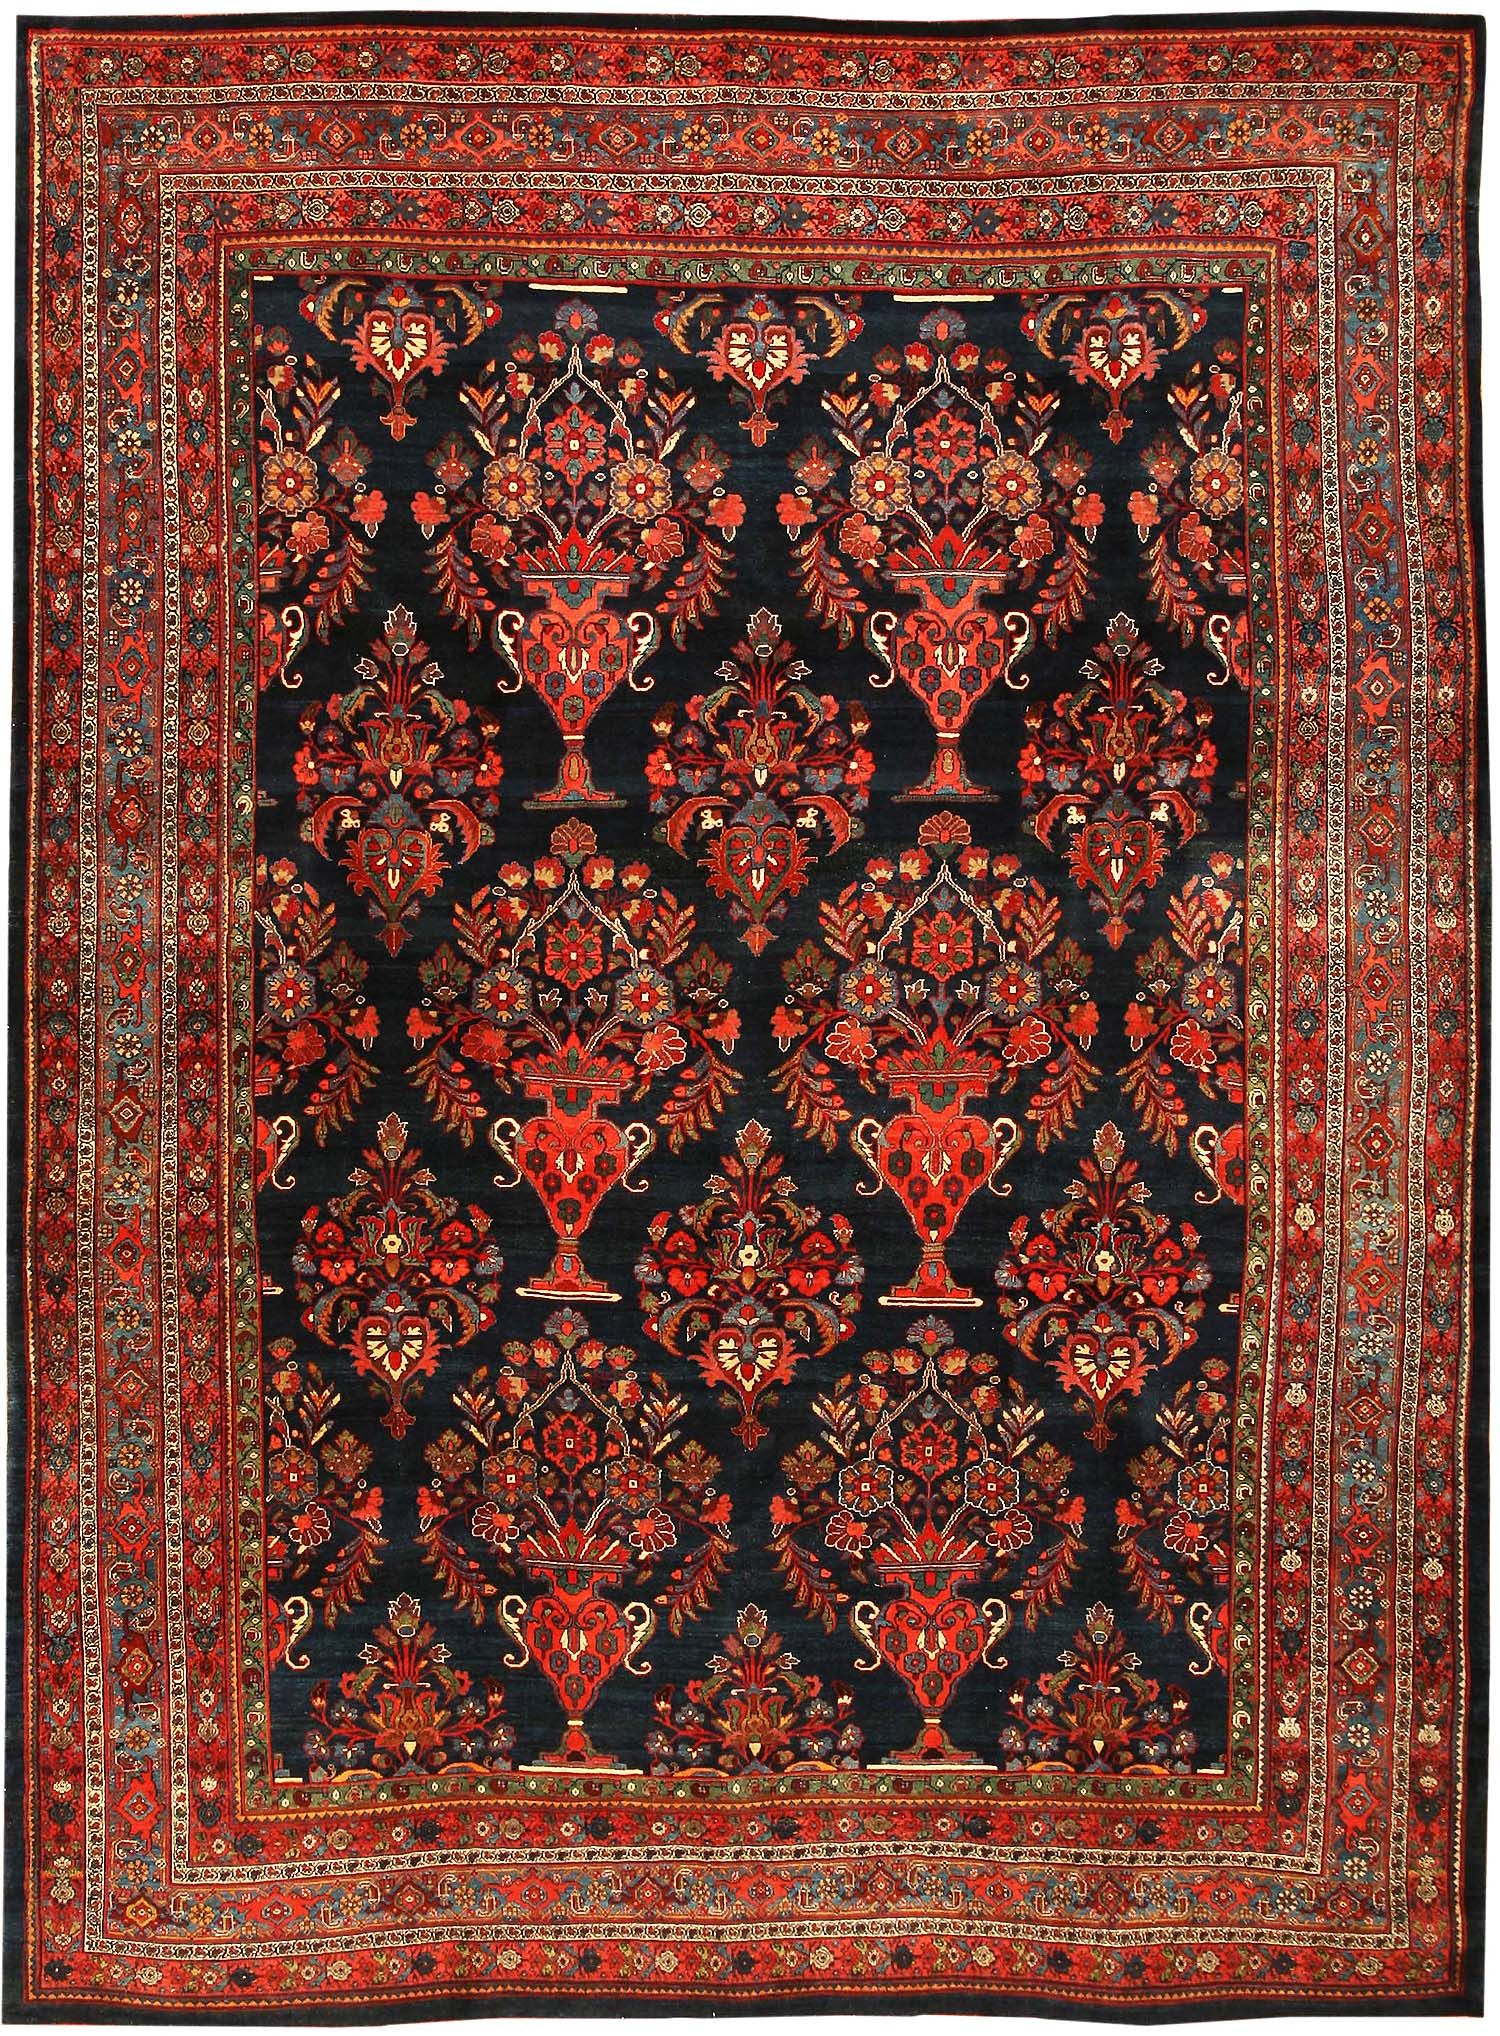 Pictures Of Antique Rugs Antique Rug Photos By Nazmiyal Rugs On Carpet Vintage Persian Rug Antique Persian Rug